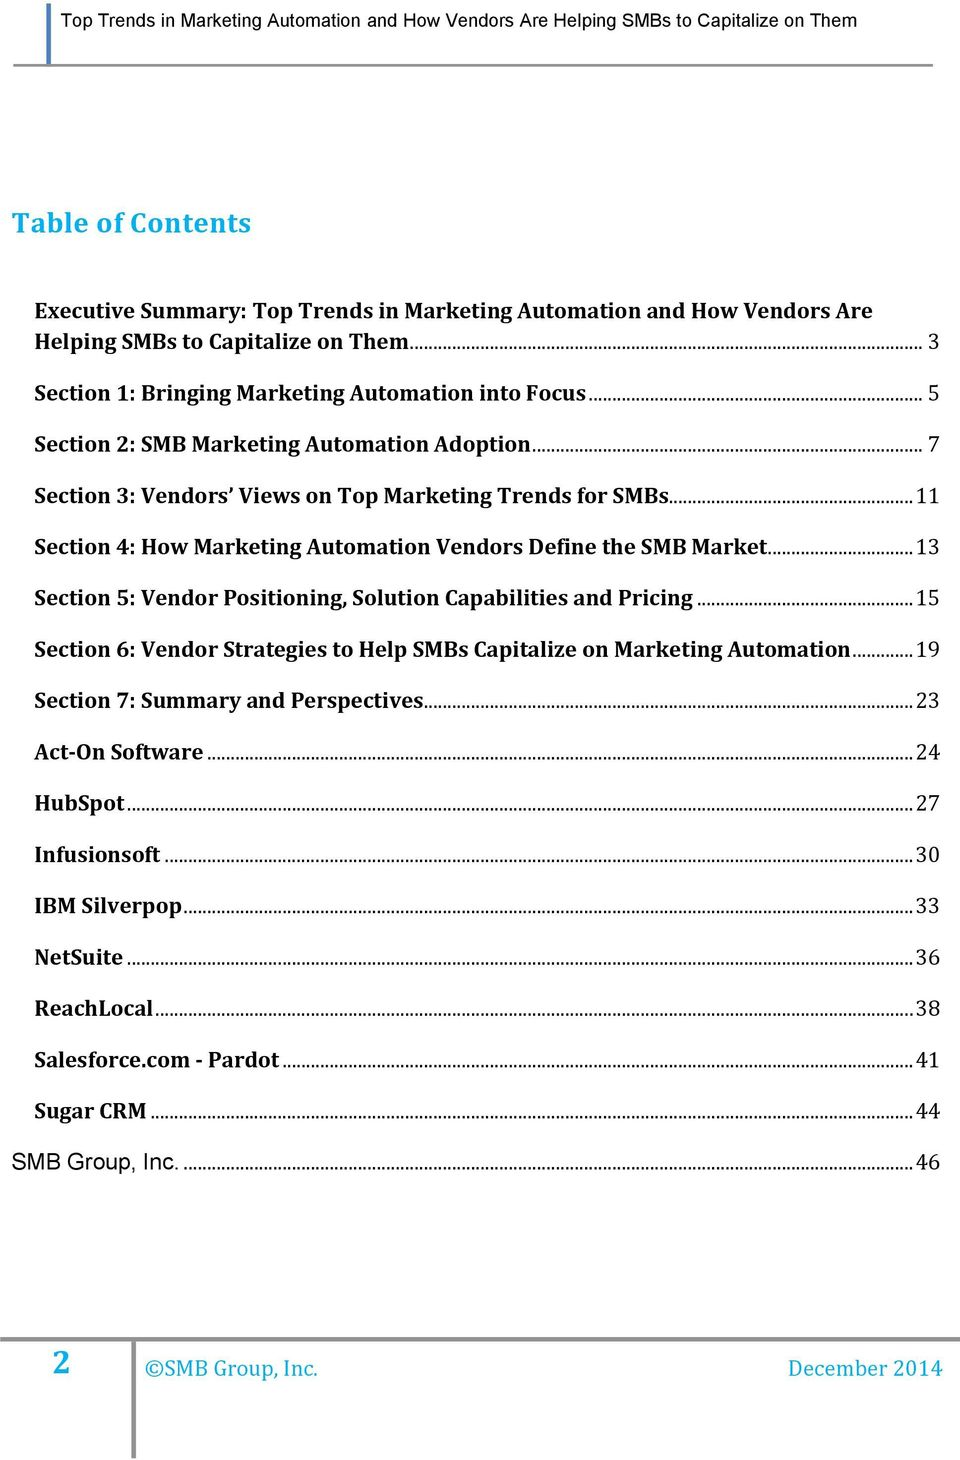 .. 13 Section 5: Vendor Positioning, Solution Capabilities and Pricing... 15 Section 6: Vendor Strategies to Help SMBs Capitalize on Marketing Automation... 19 Section 7: Summary and Perspectives.